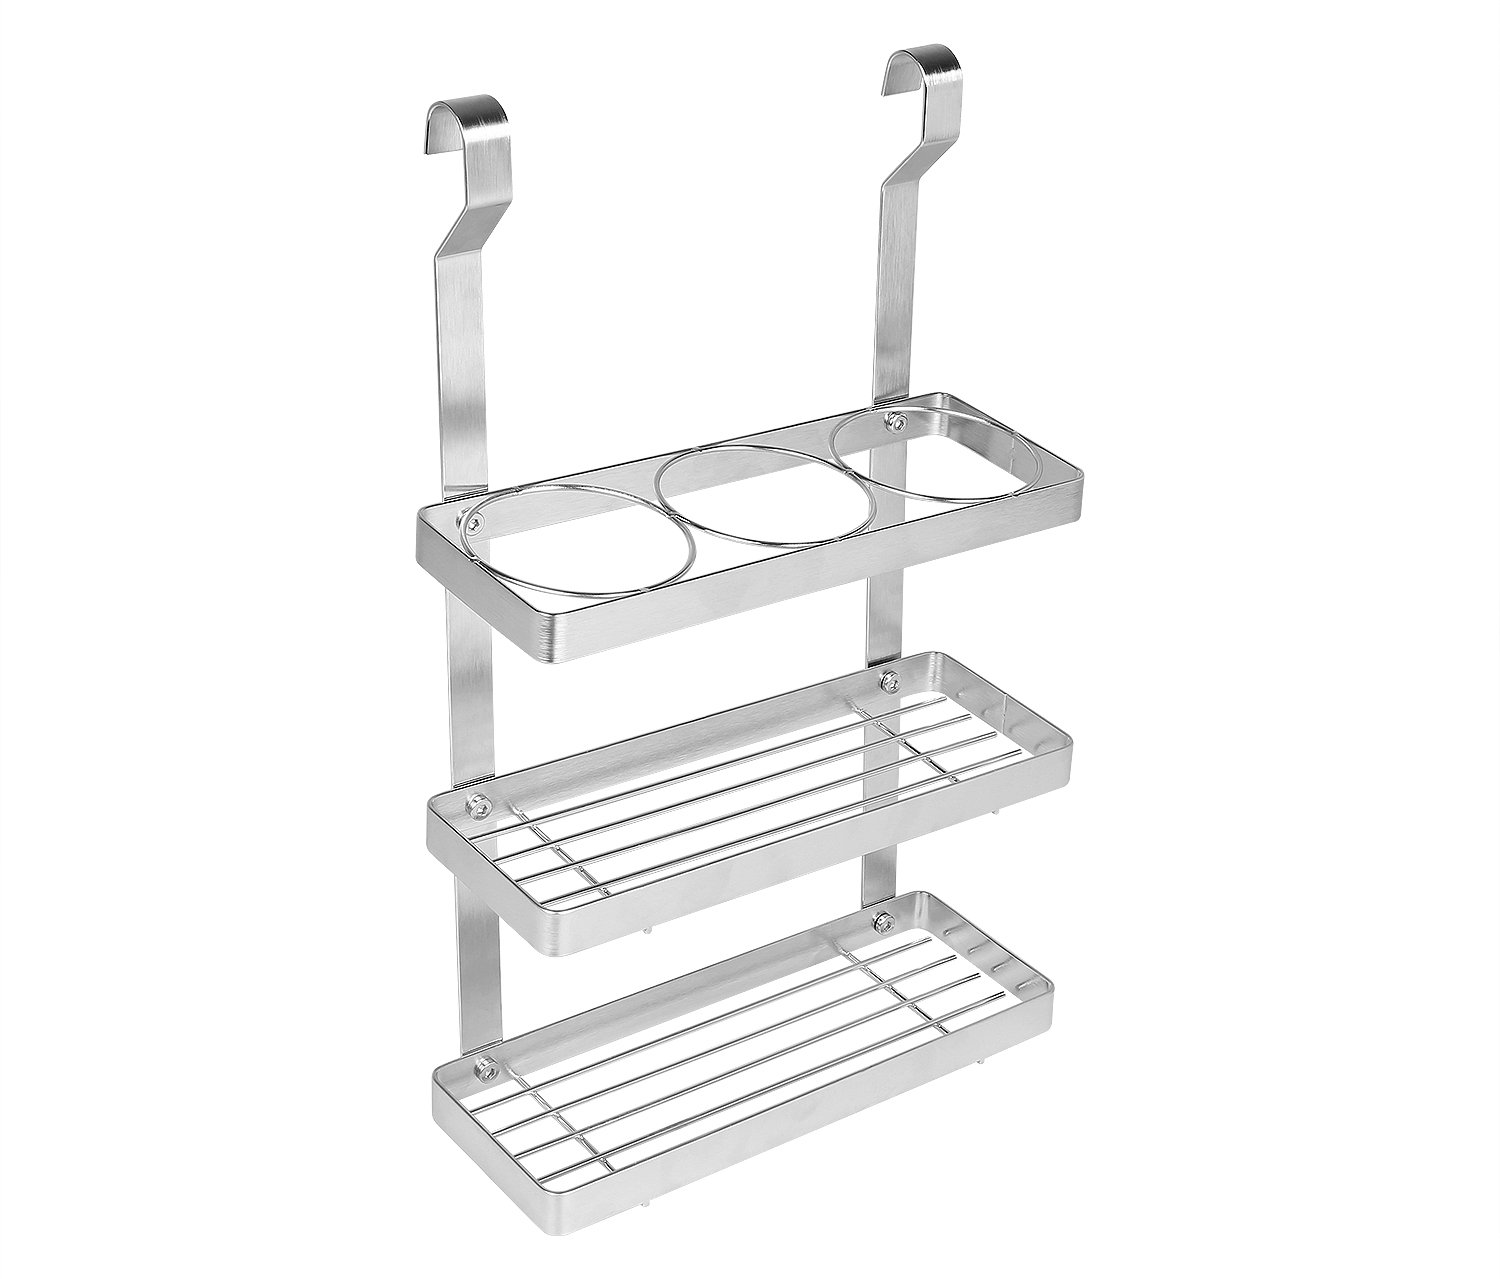 HLC 3-tier Stainless Steel Condiment Shelf Best for Kitchen